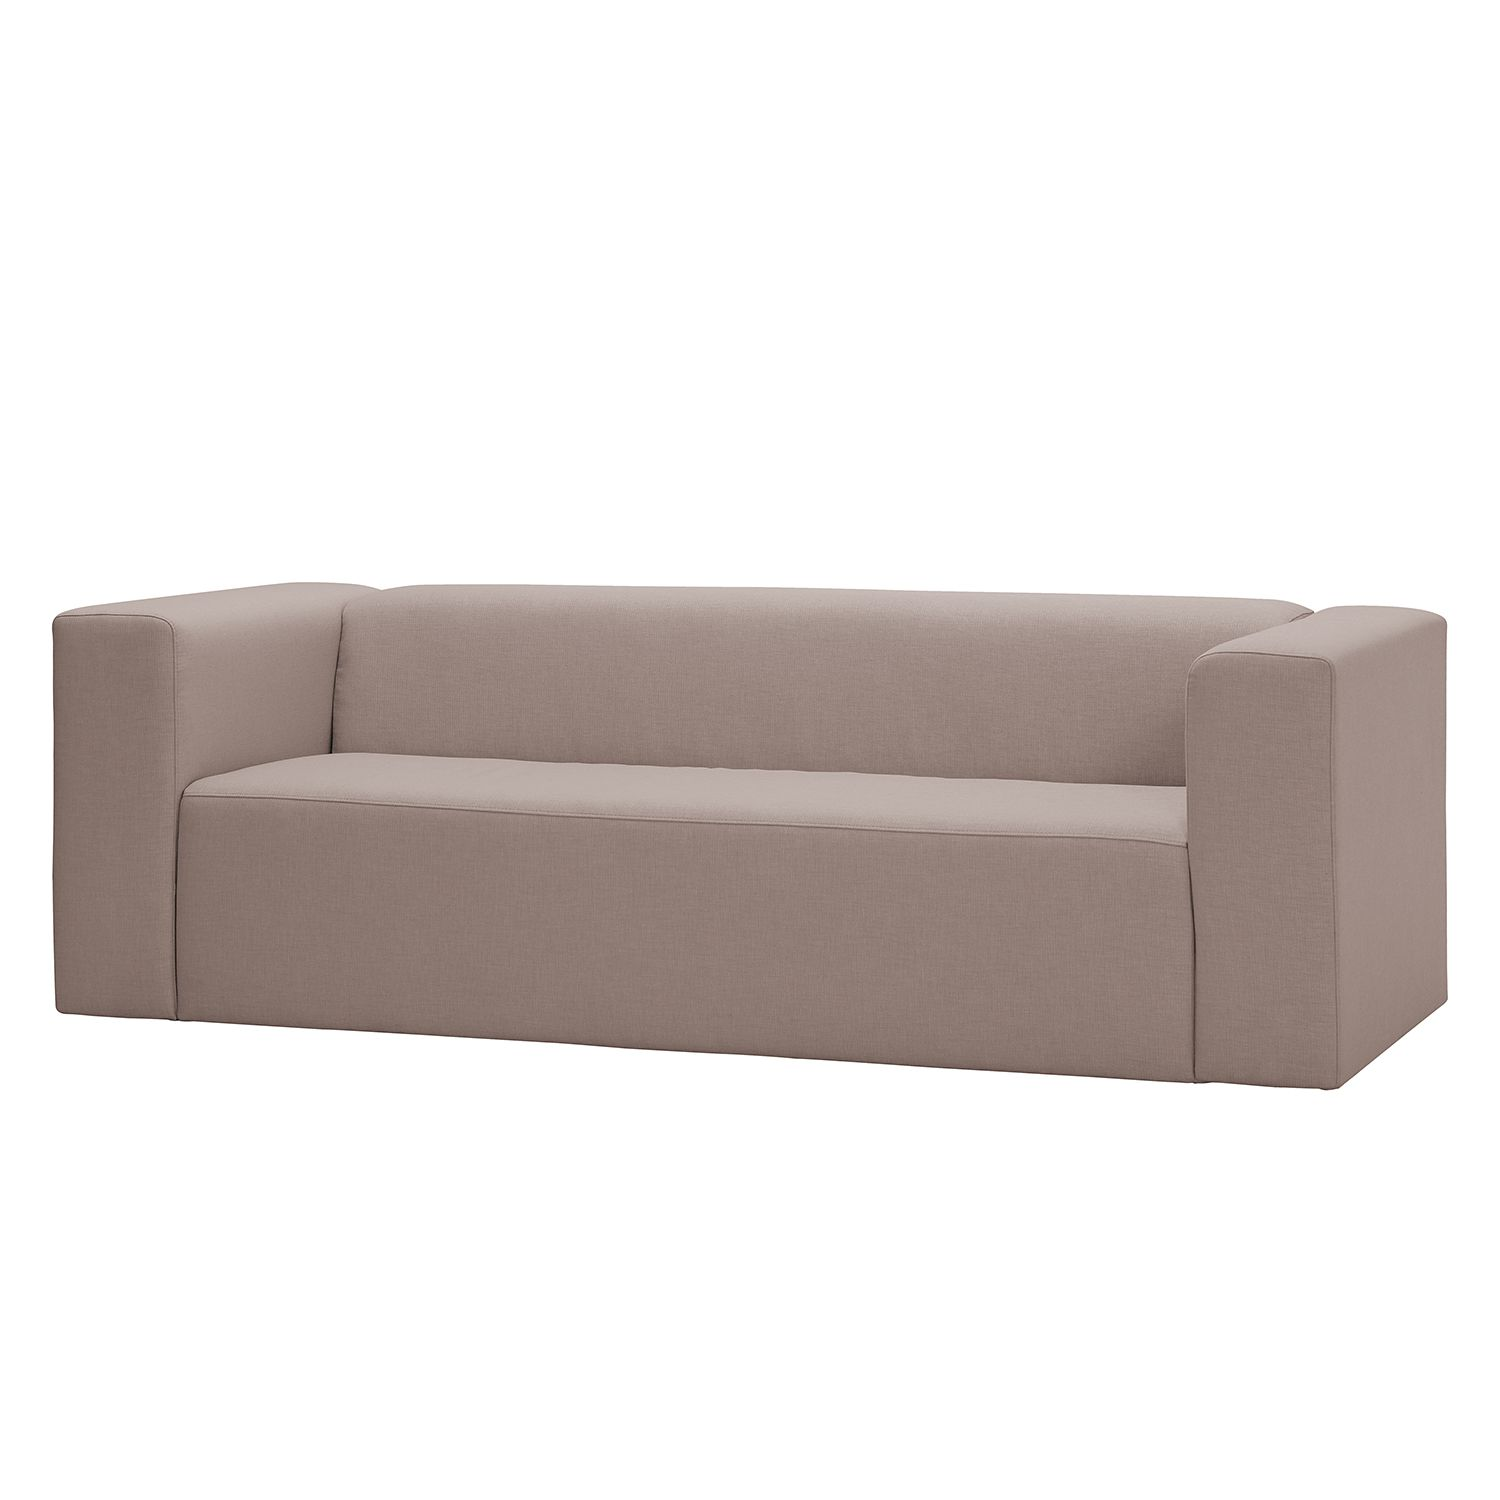 sofas online bestellen schweiz ashley furniture darcy sofa top landhaus couch kaufen